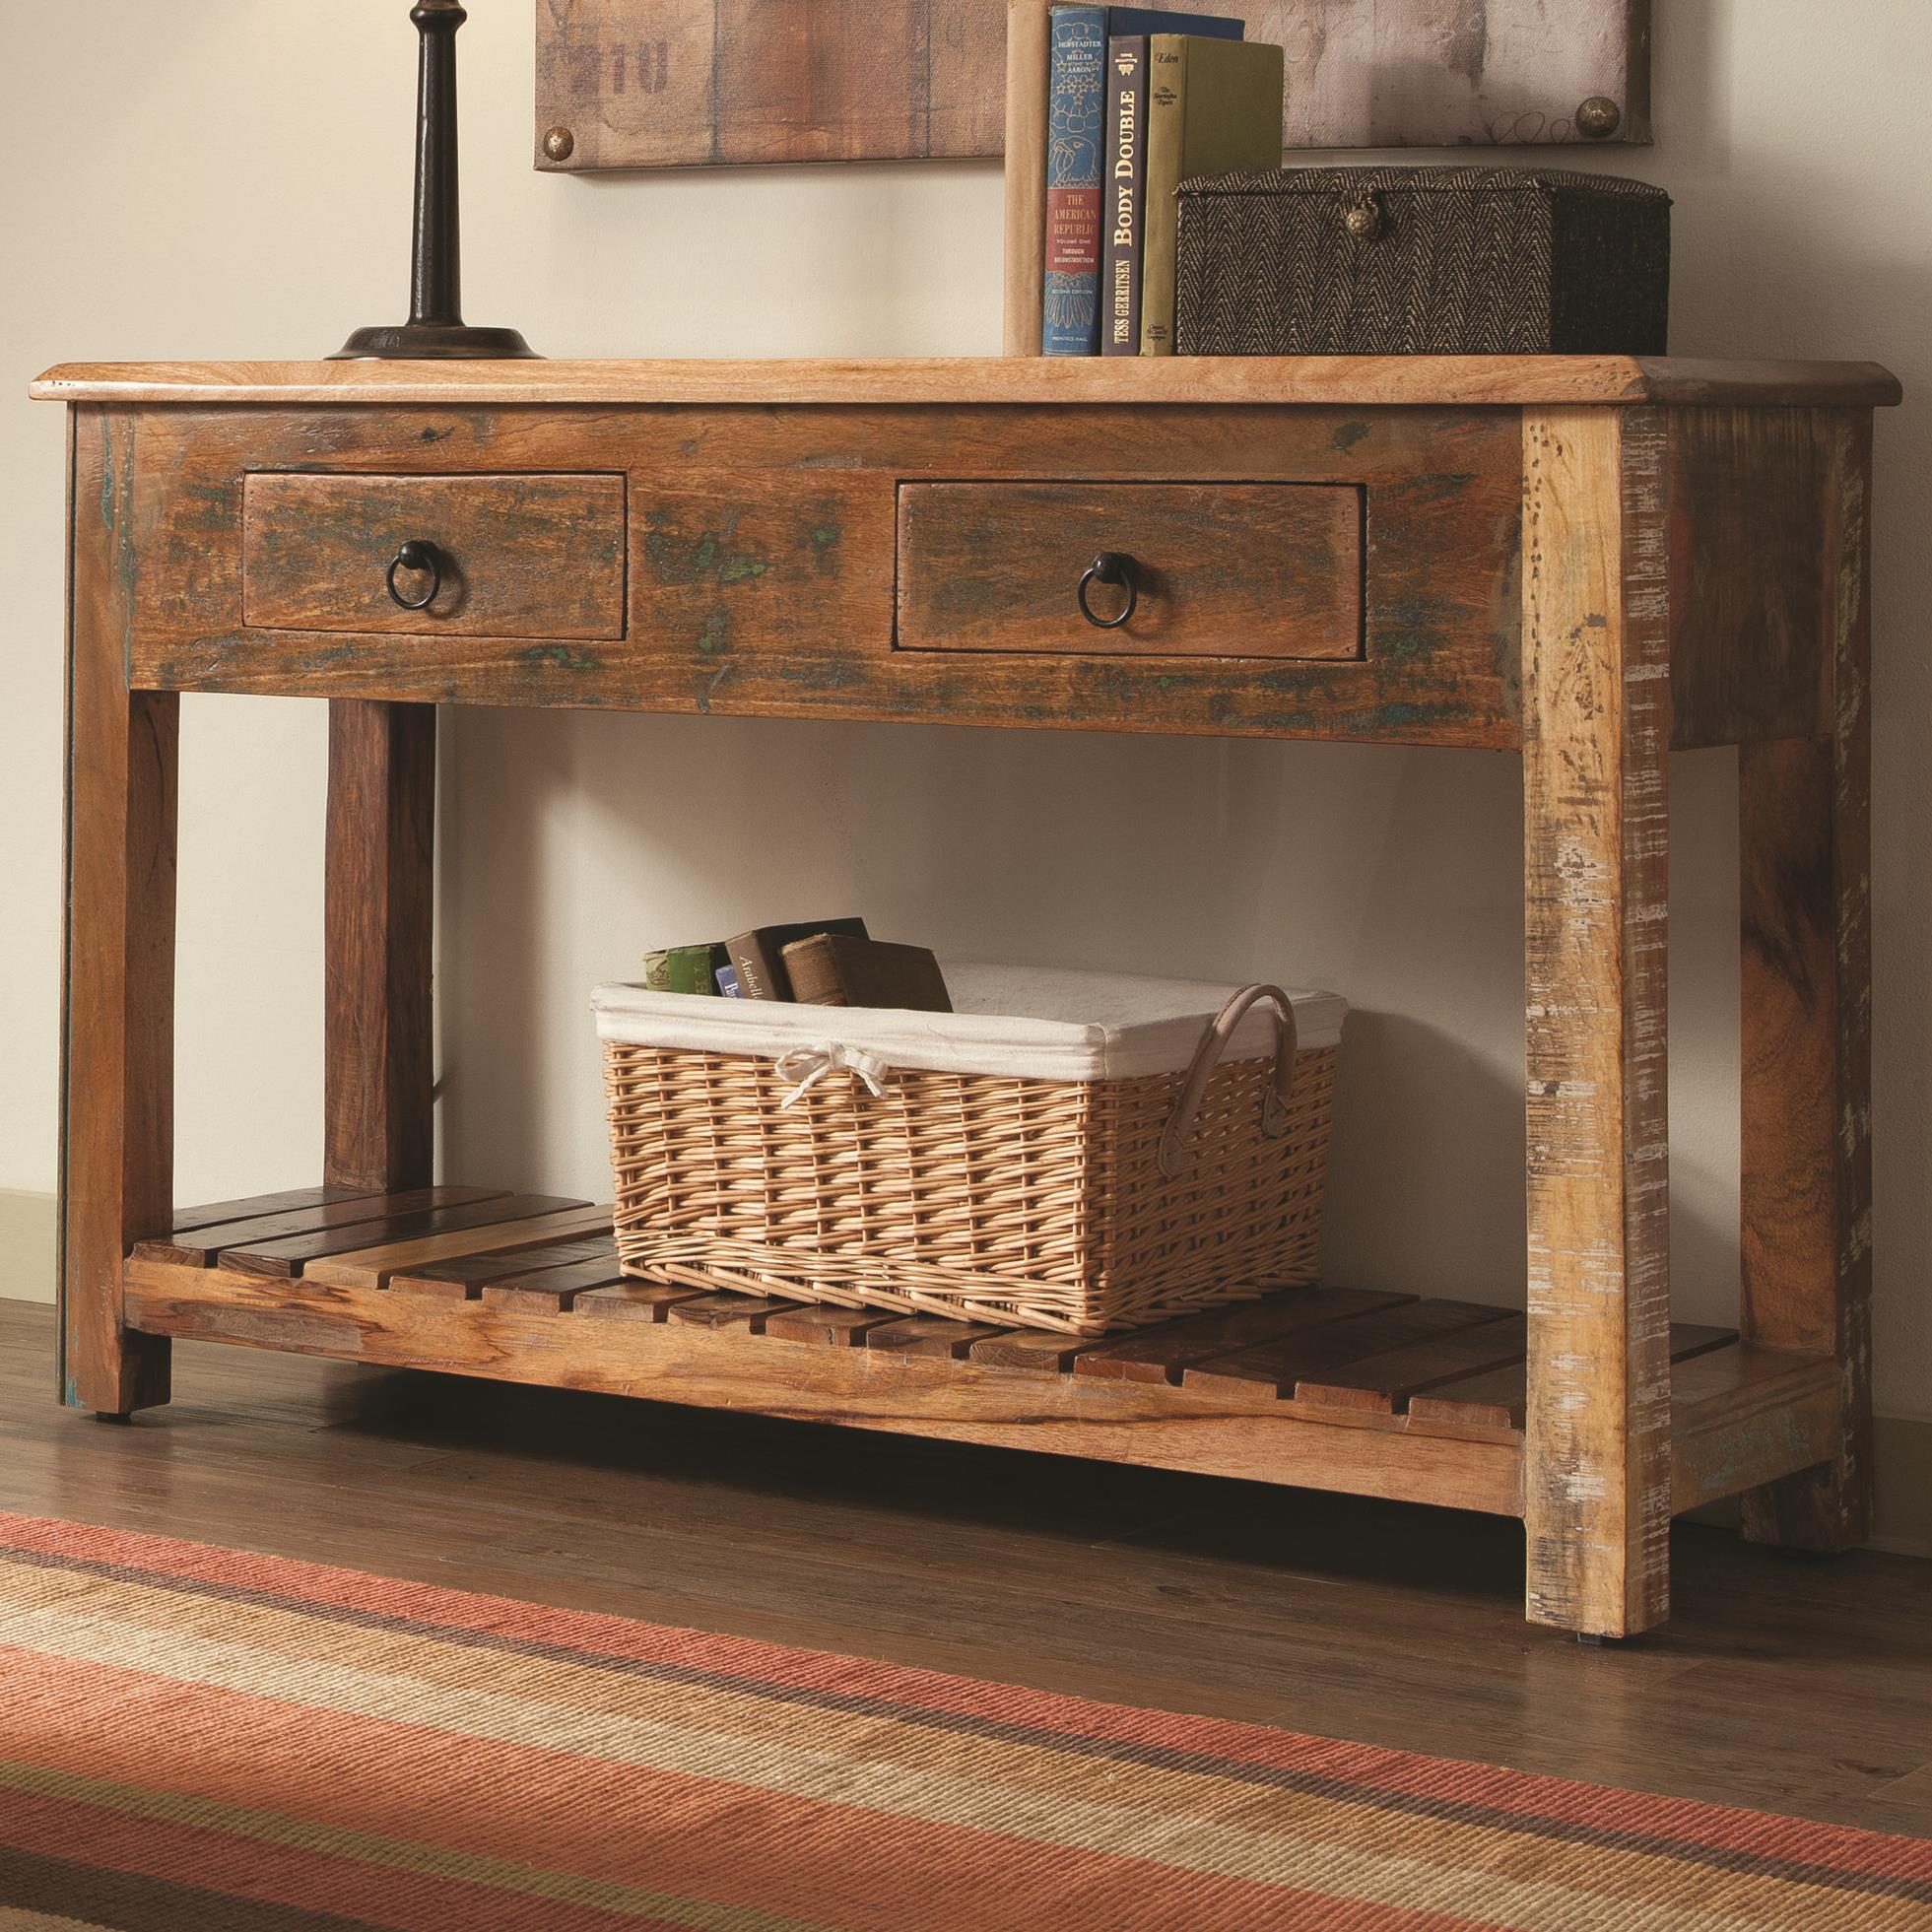 Coaster Accent Cabinets Console Table - Item Number: 950364